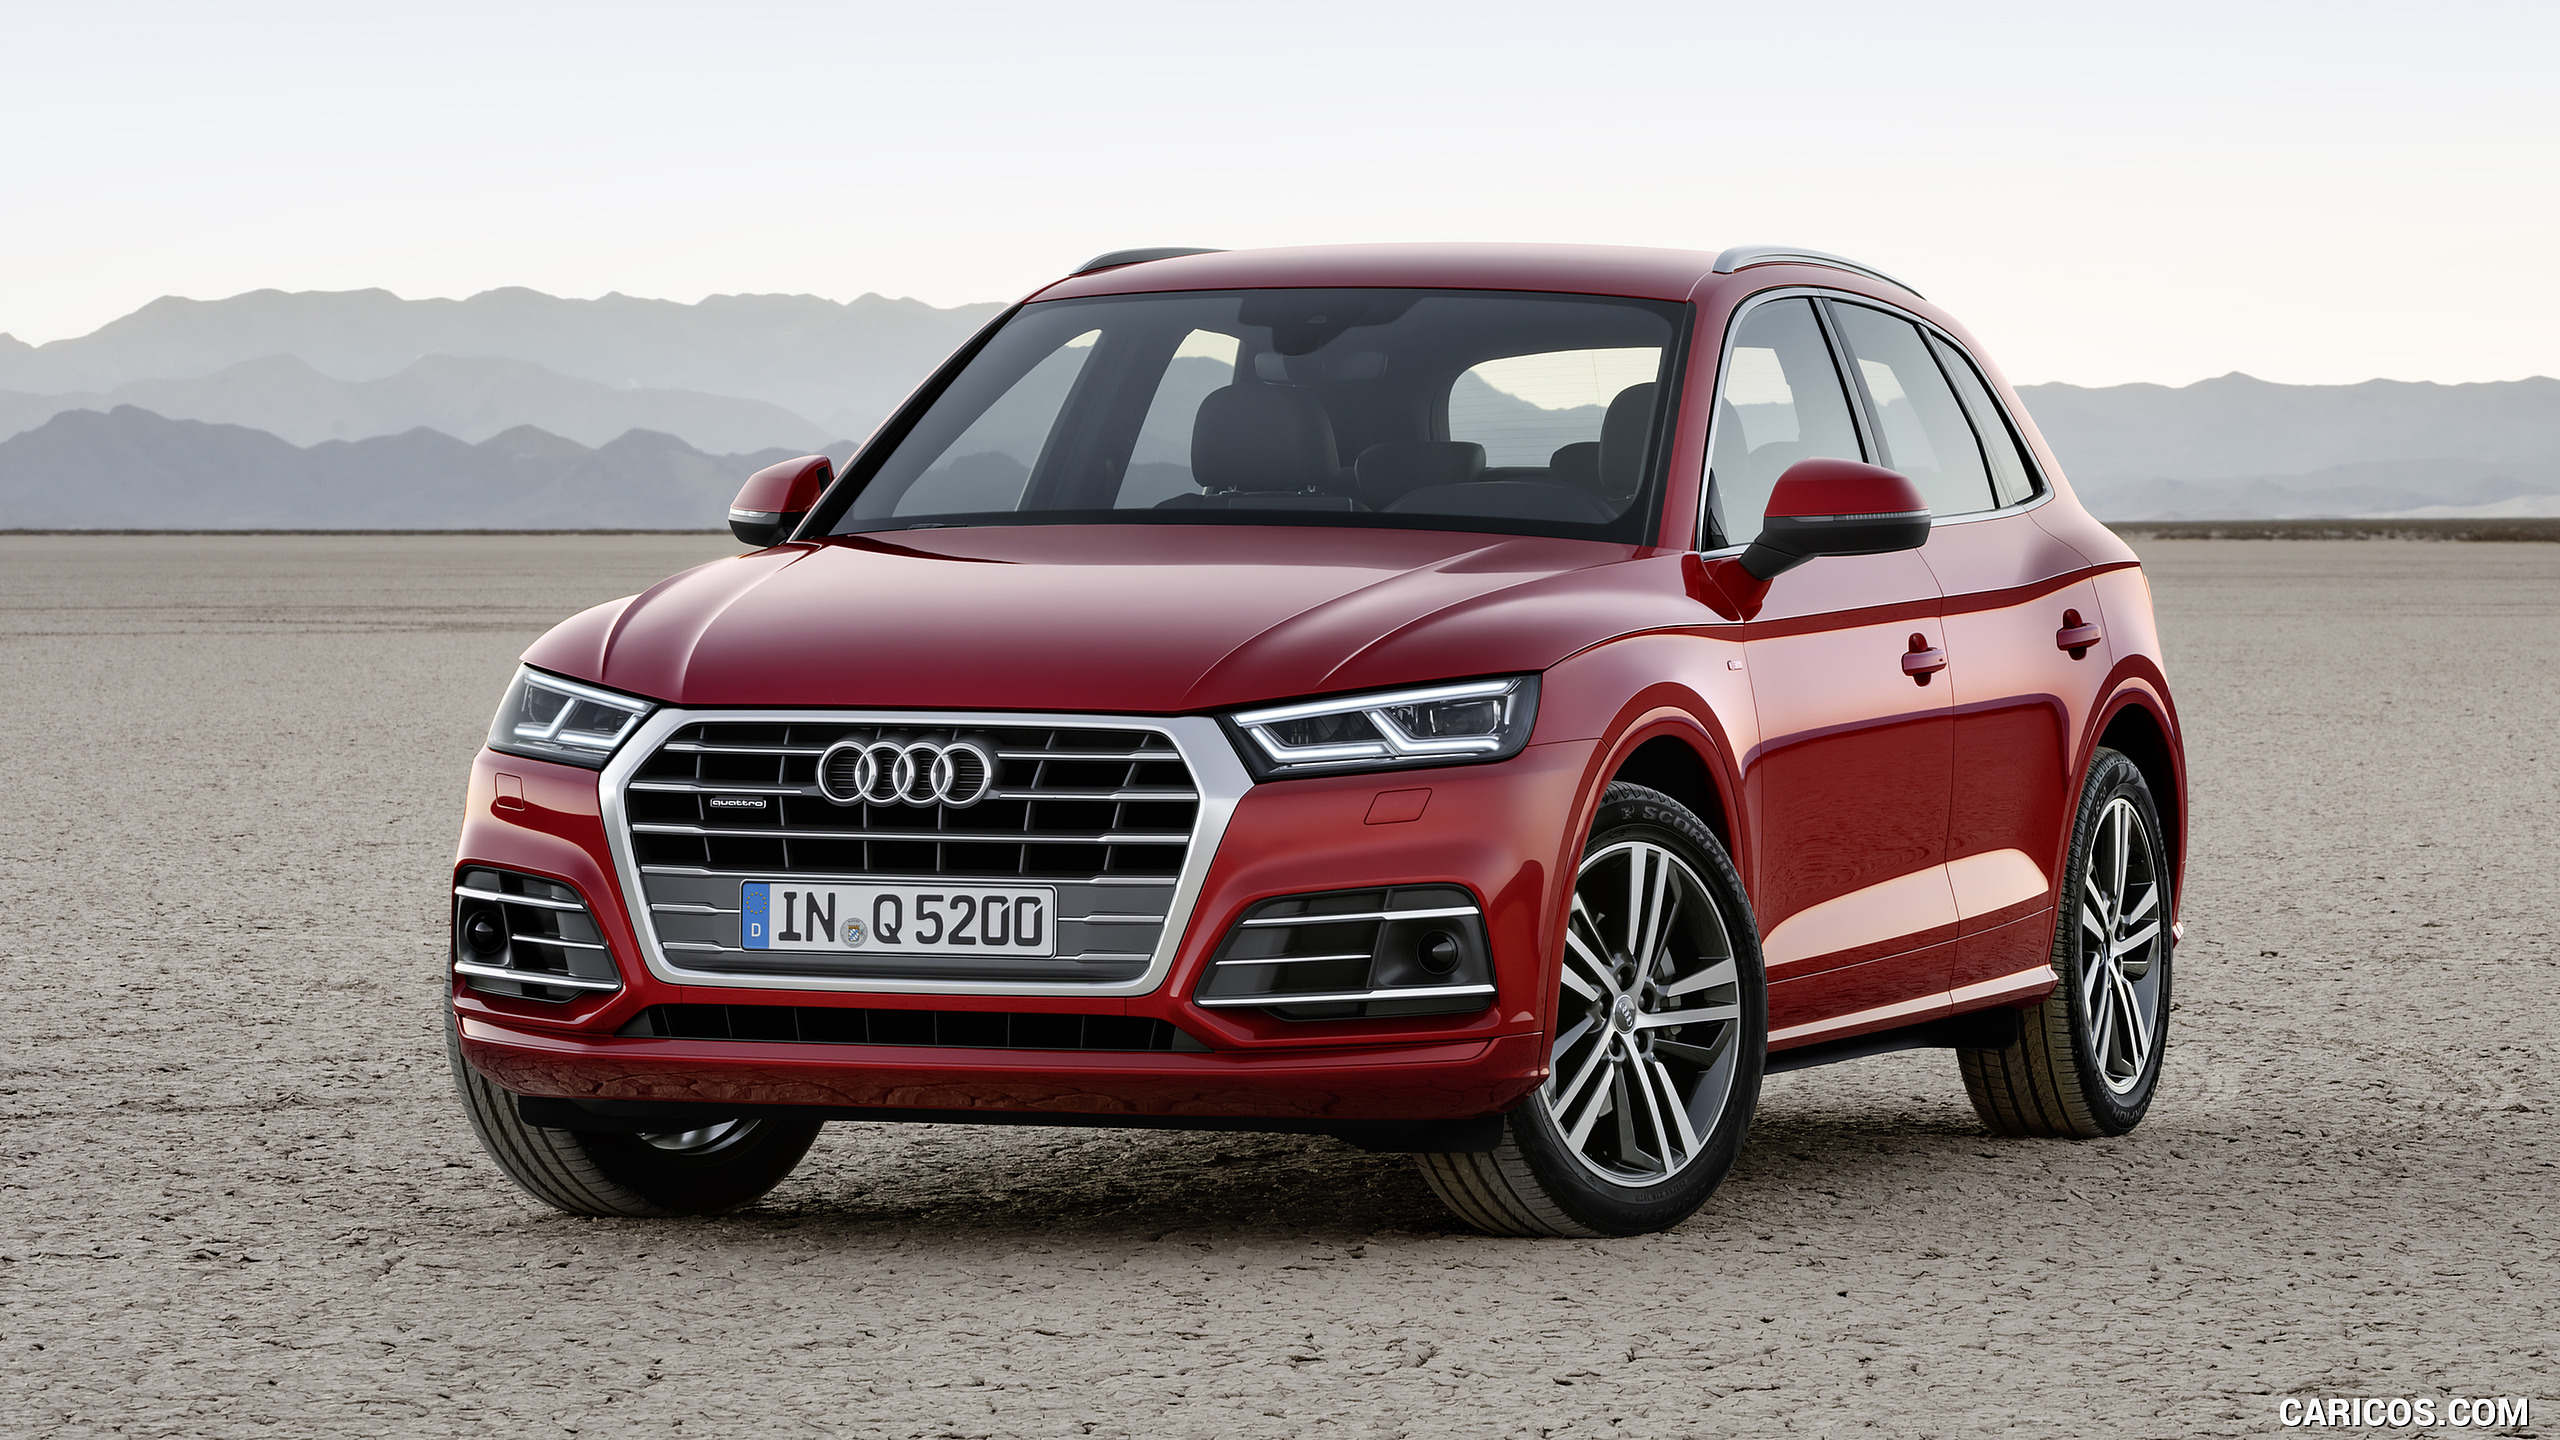 2560x1440 - Audi Q5 Wallpapers 34